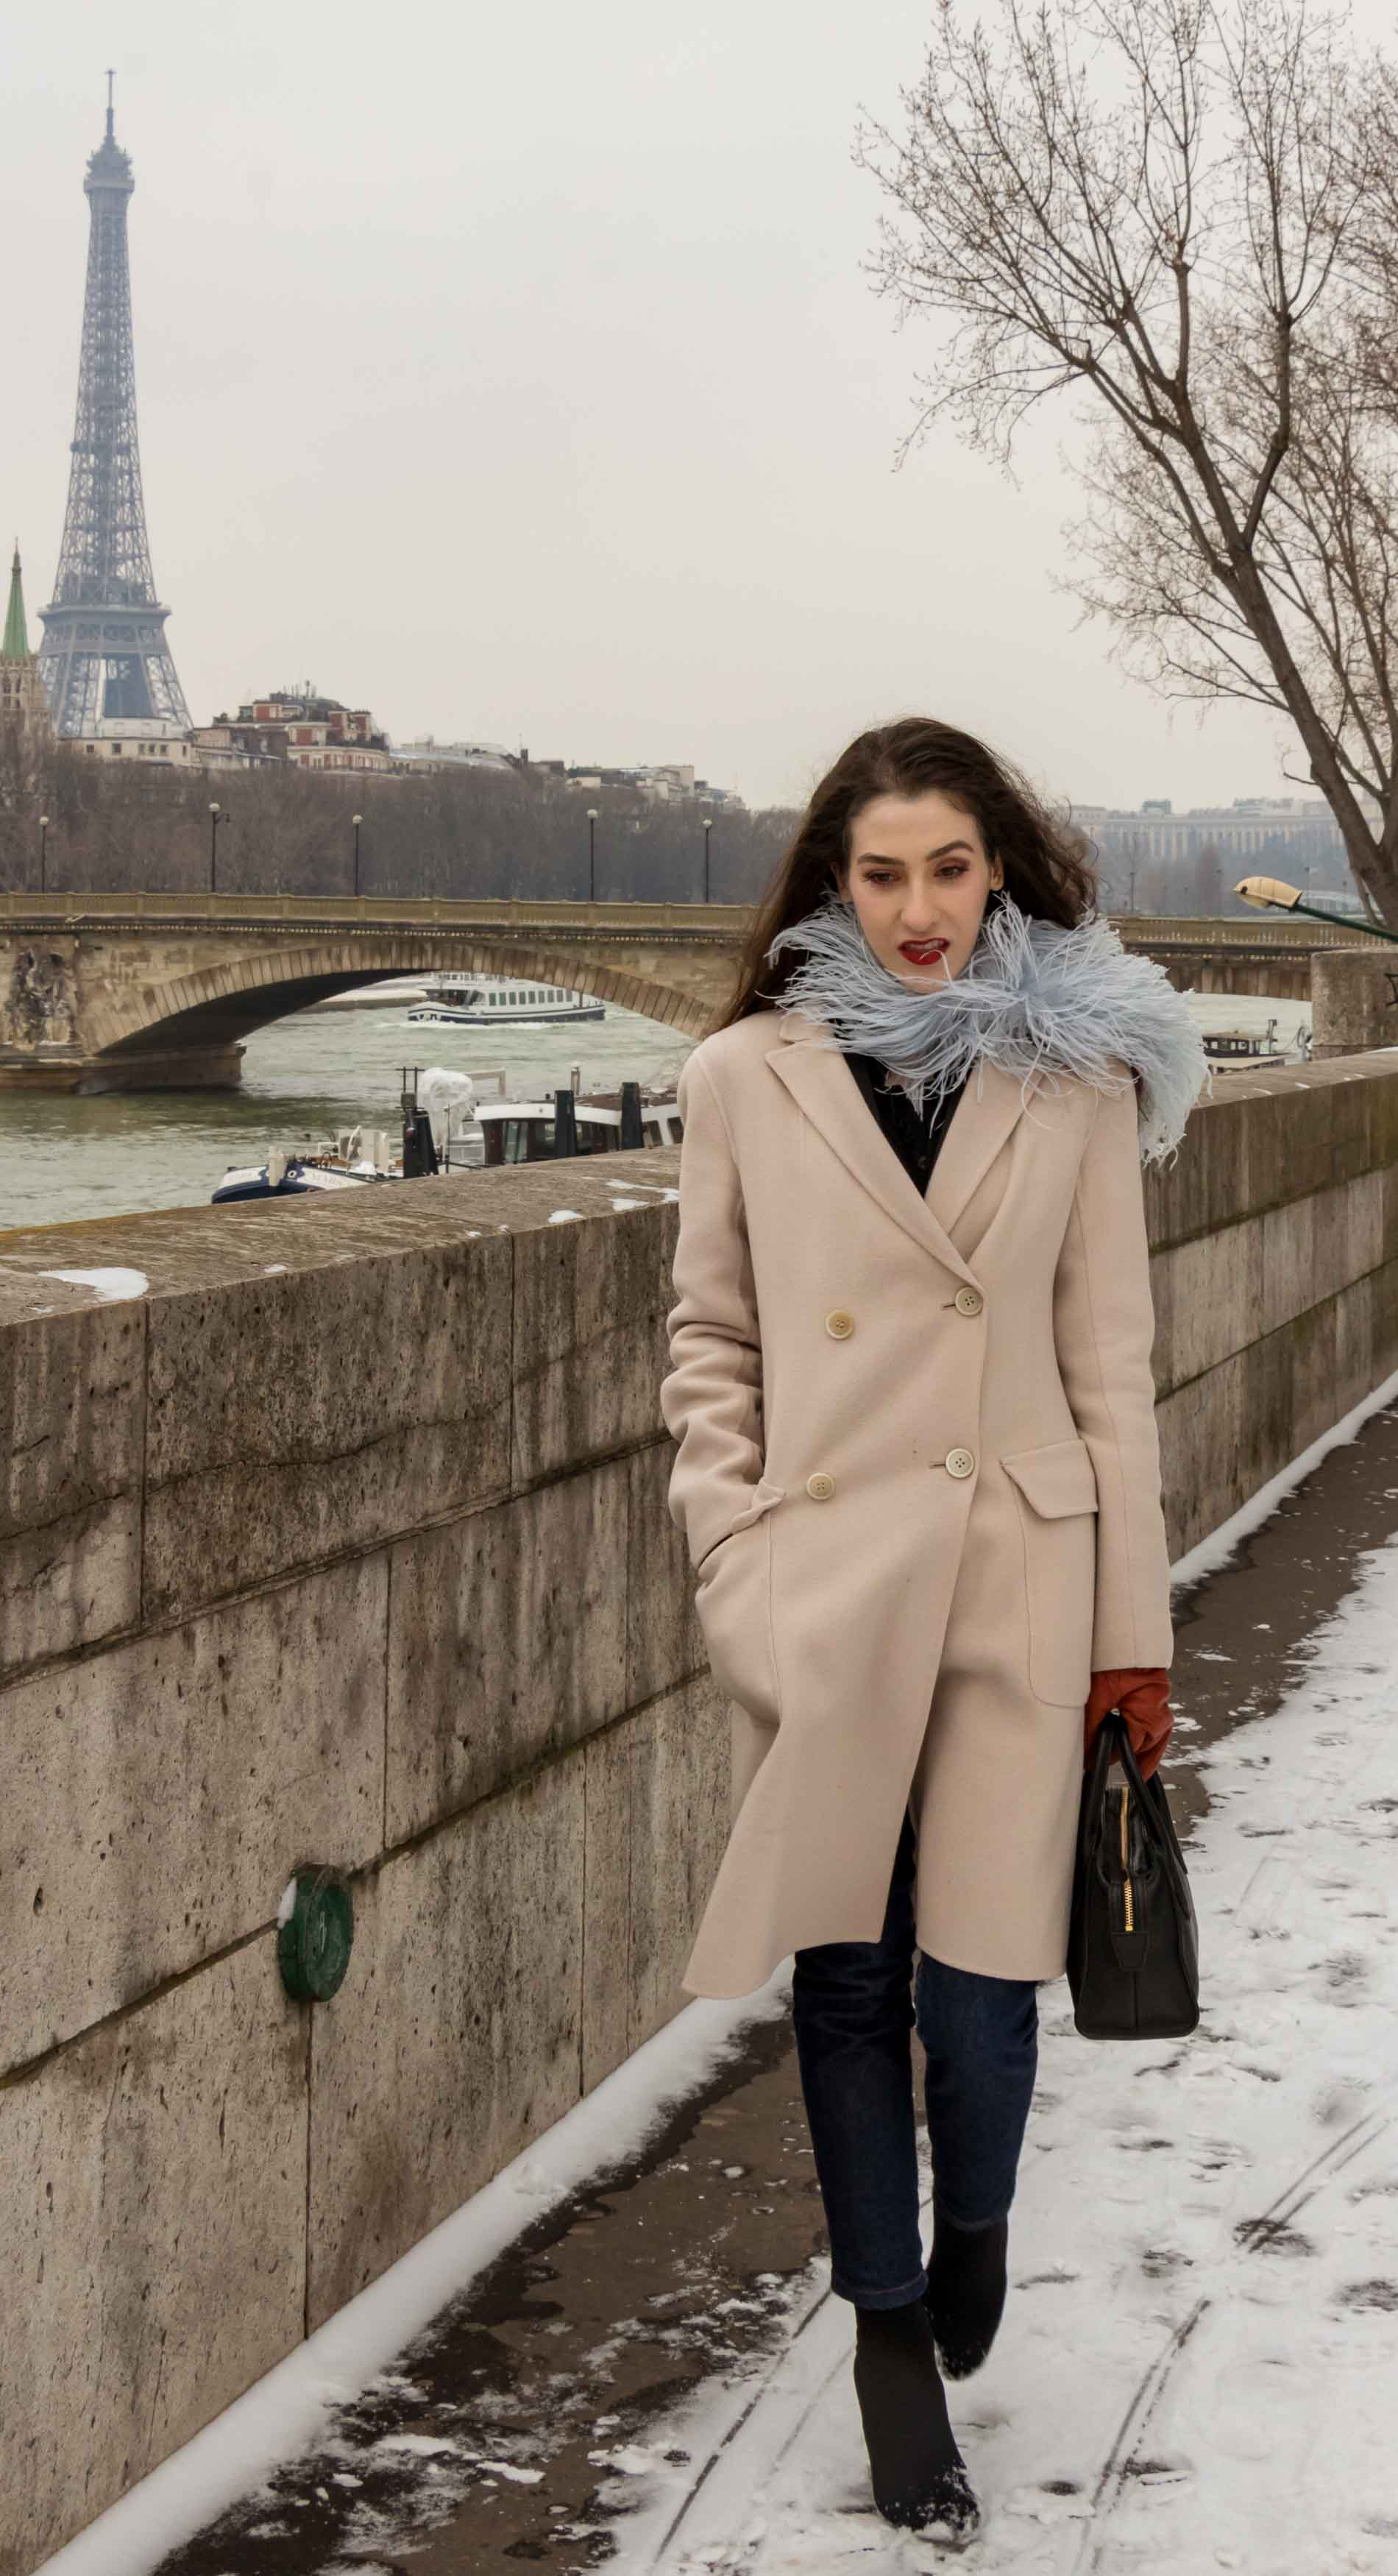 Fashion Blogger Veronika Lipar of Brunette from Wall Street wearing feathers, Weekend Maxmara coat, dark denim jeans, black sock boots, leather gloves, standing at Pont du Alexandre III in Paris during Paris fashion week autumn winter 2018/19